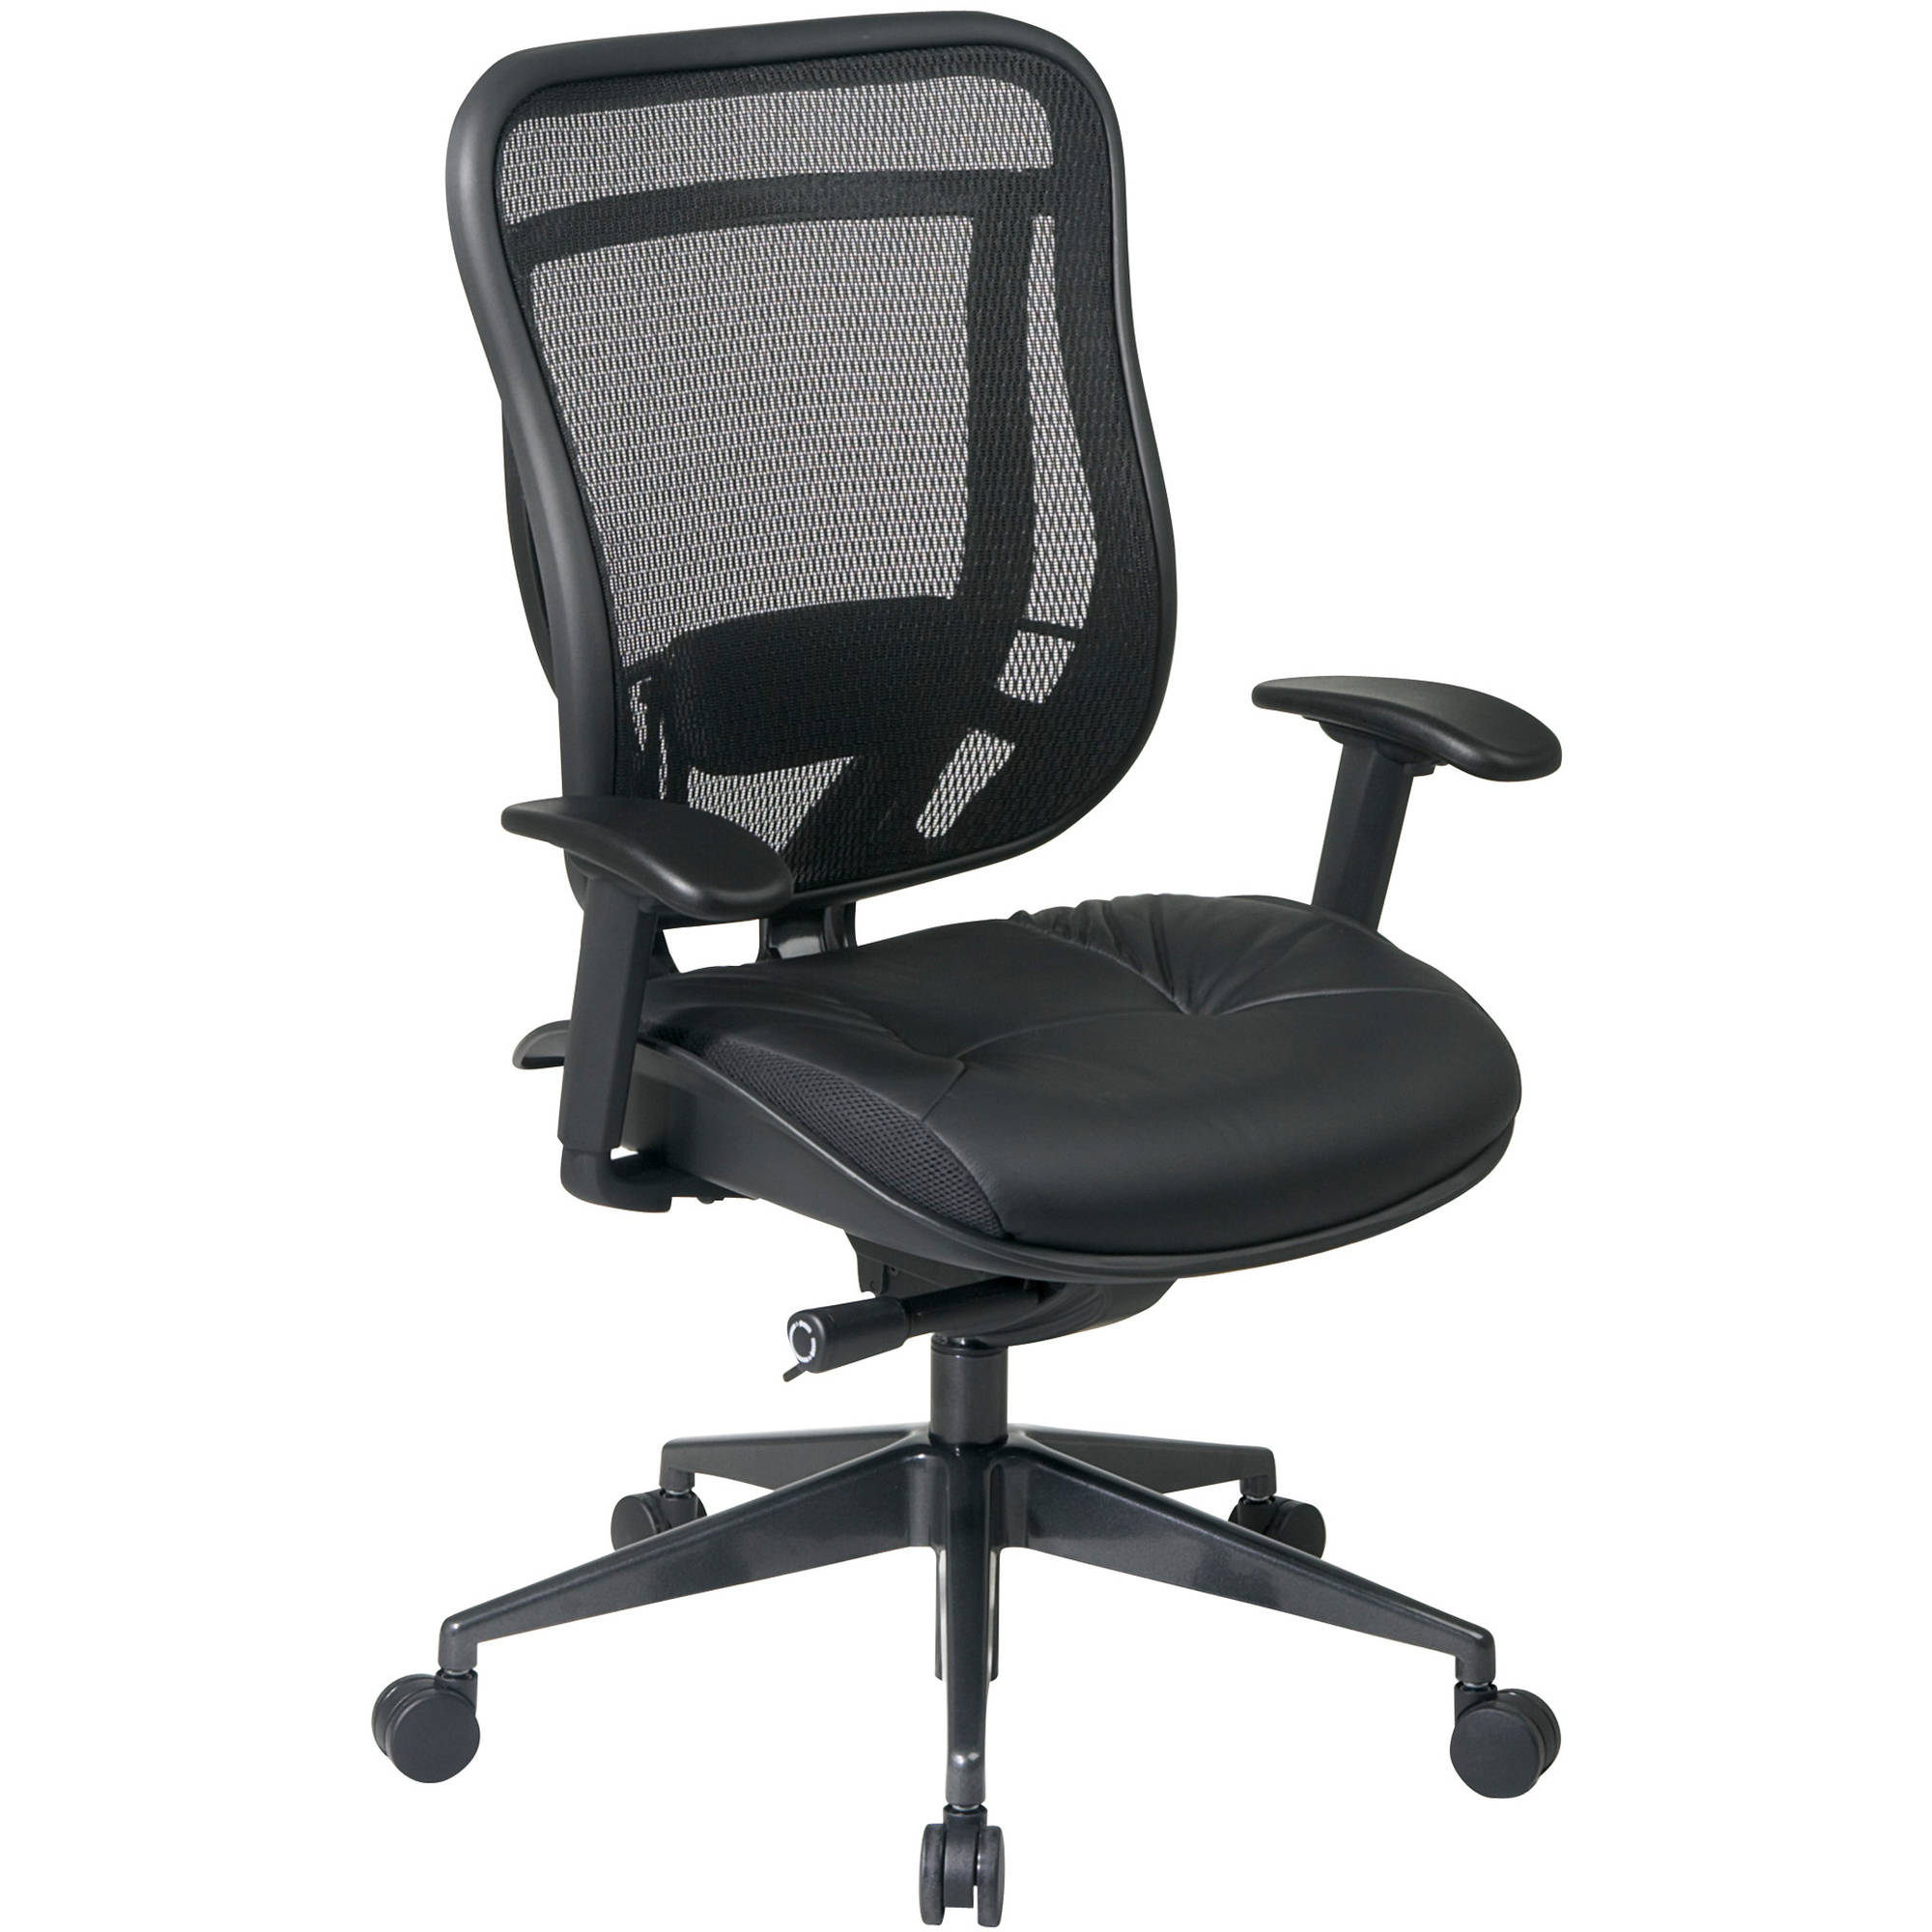 Space Seating Executive High Back Chair with Breathable Mesh Back and Leather Seat with Gunmetal Finish Angled Base, Black